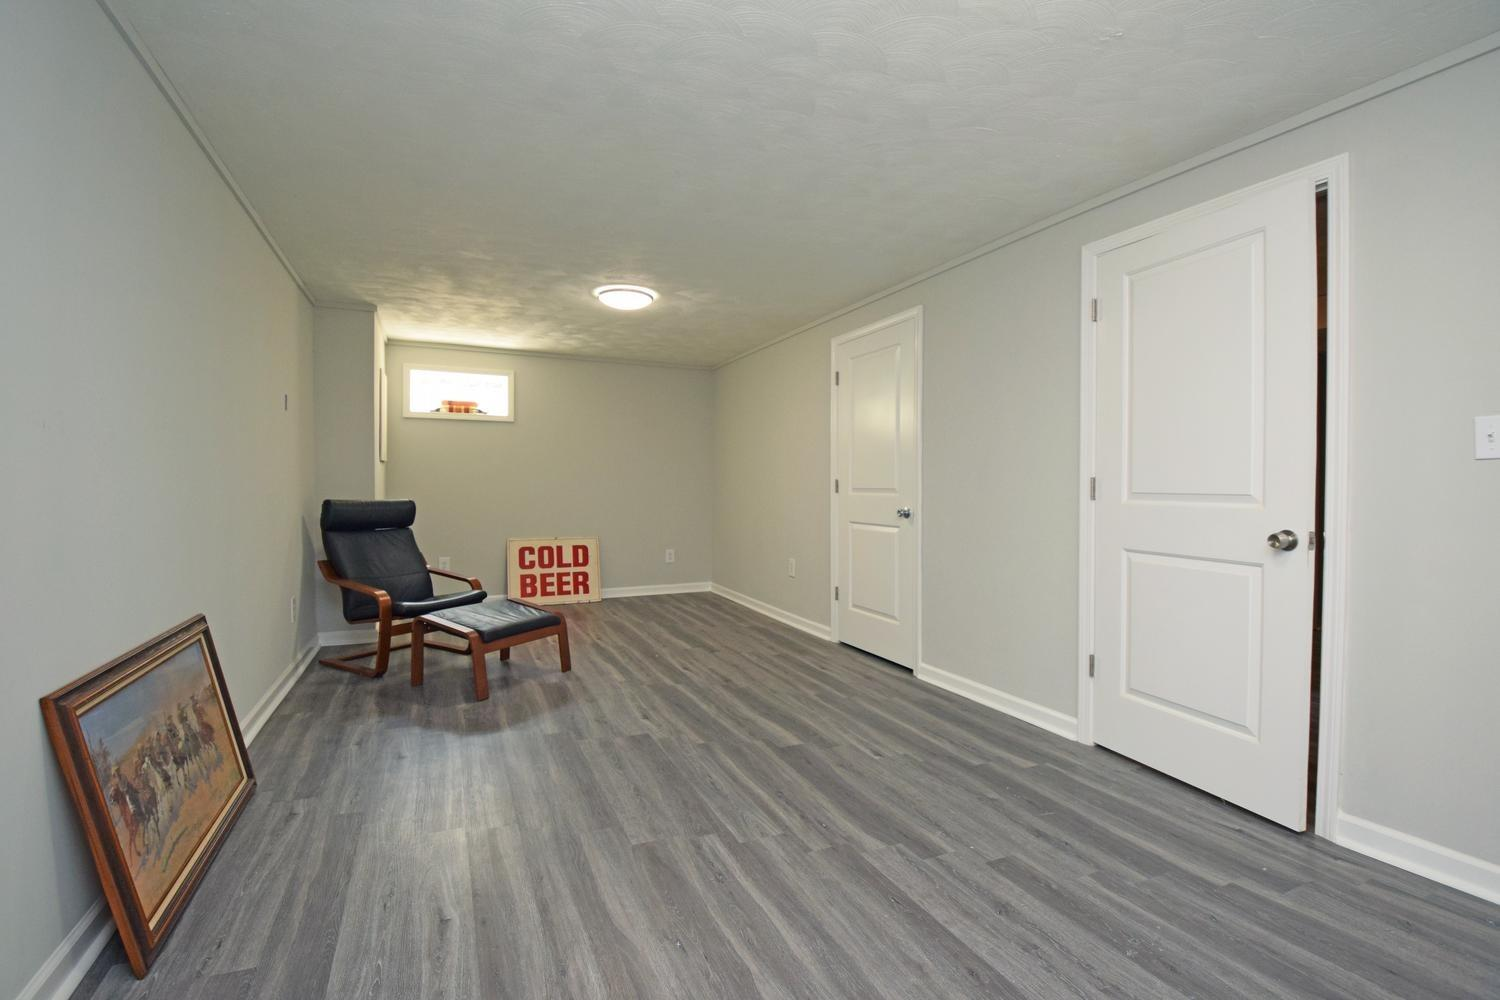 Rec Room with Closet and Doorway to Common Area